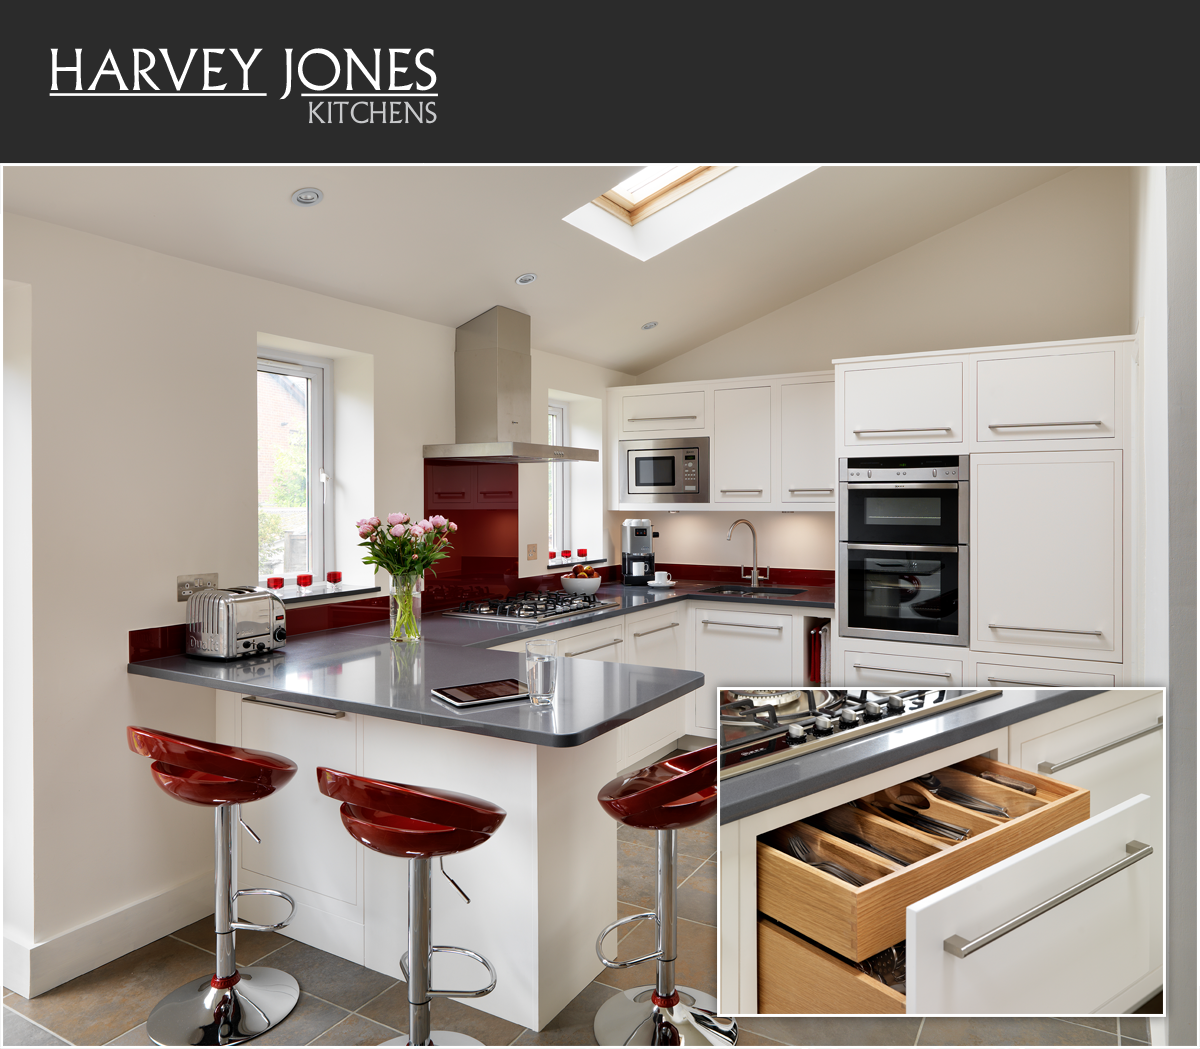 Harvey Jones Harveyjonesuk Twitter